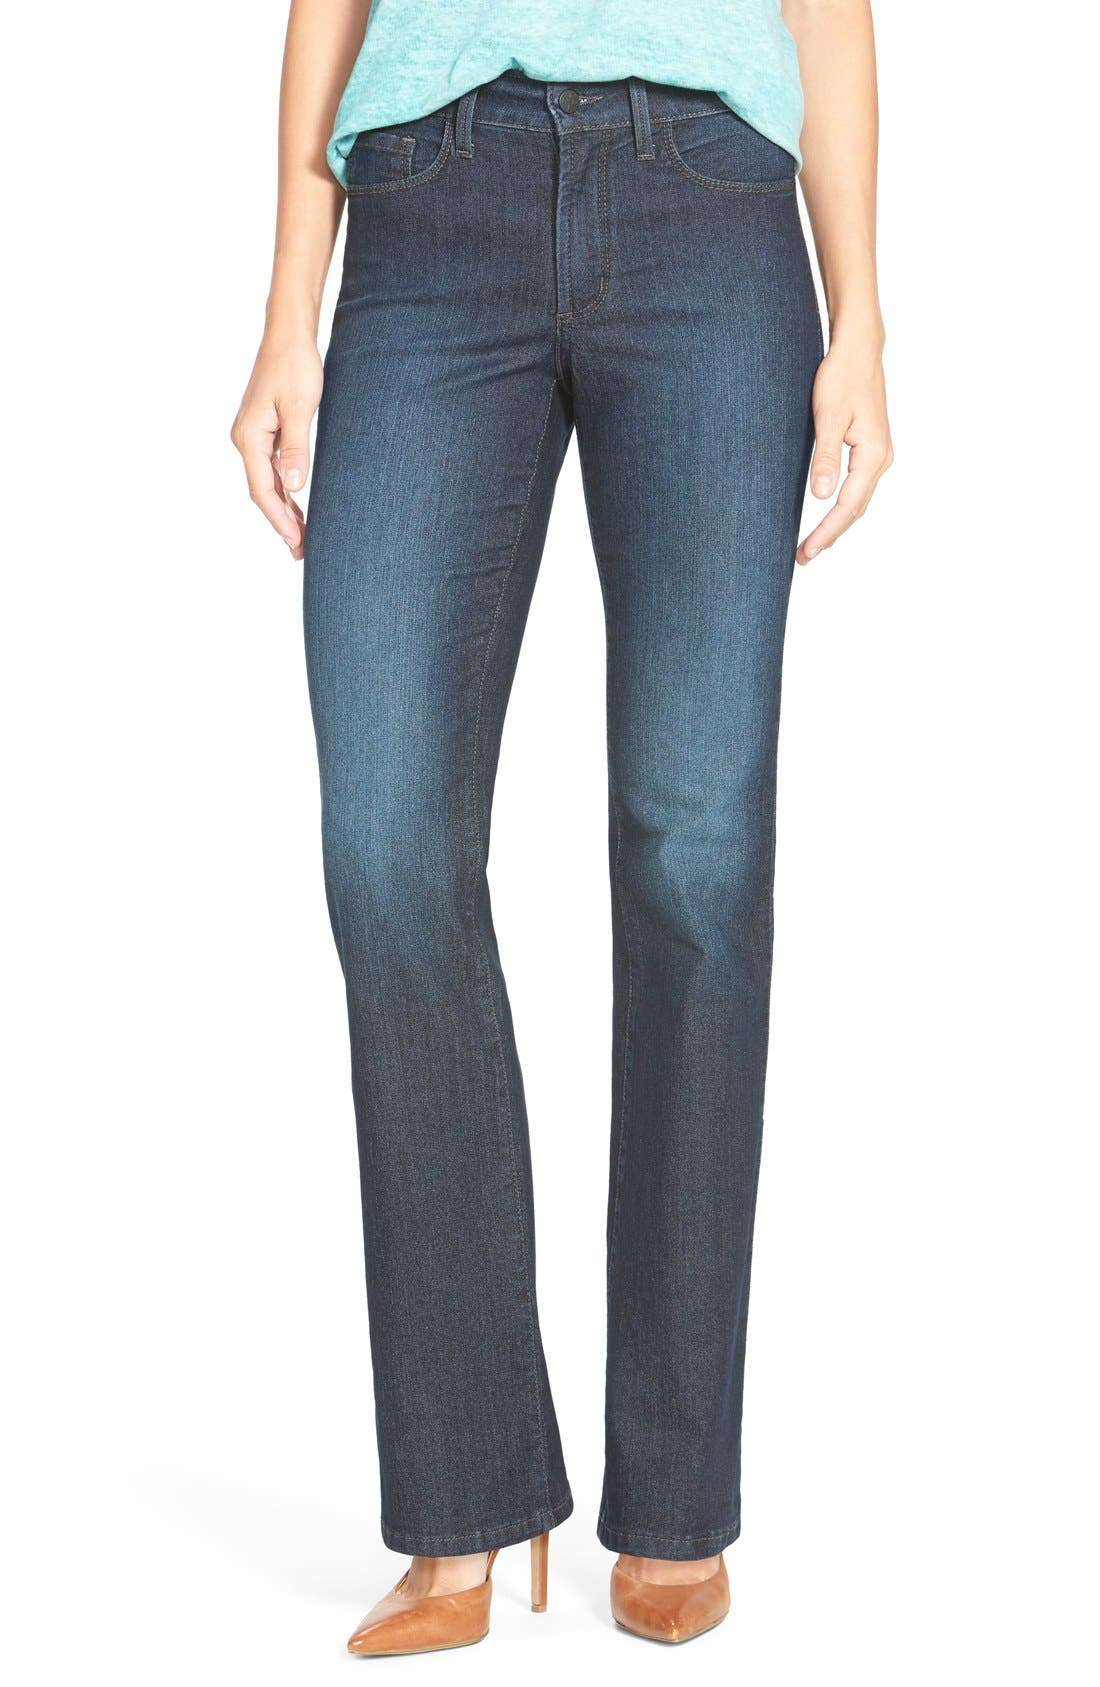 Jeans & Denim for Women: Skinny, Boyfriend & More | Nordstrom